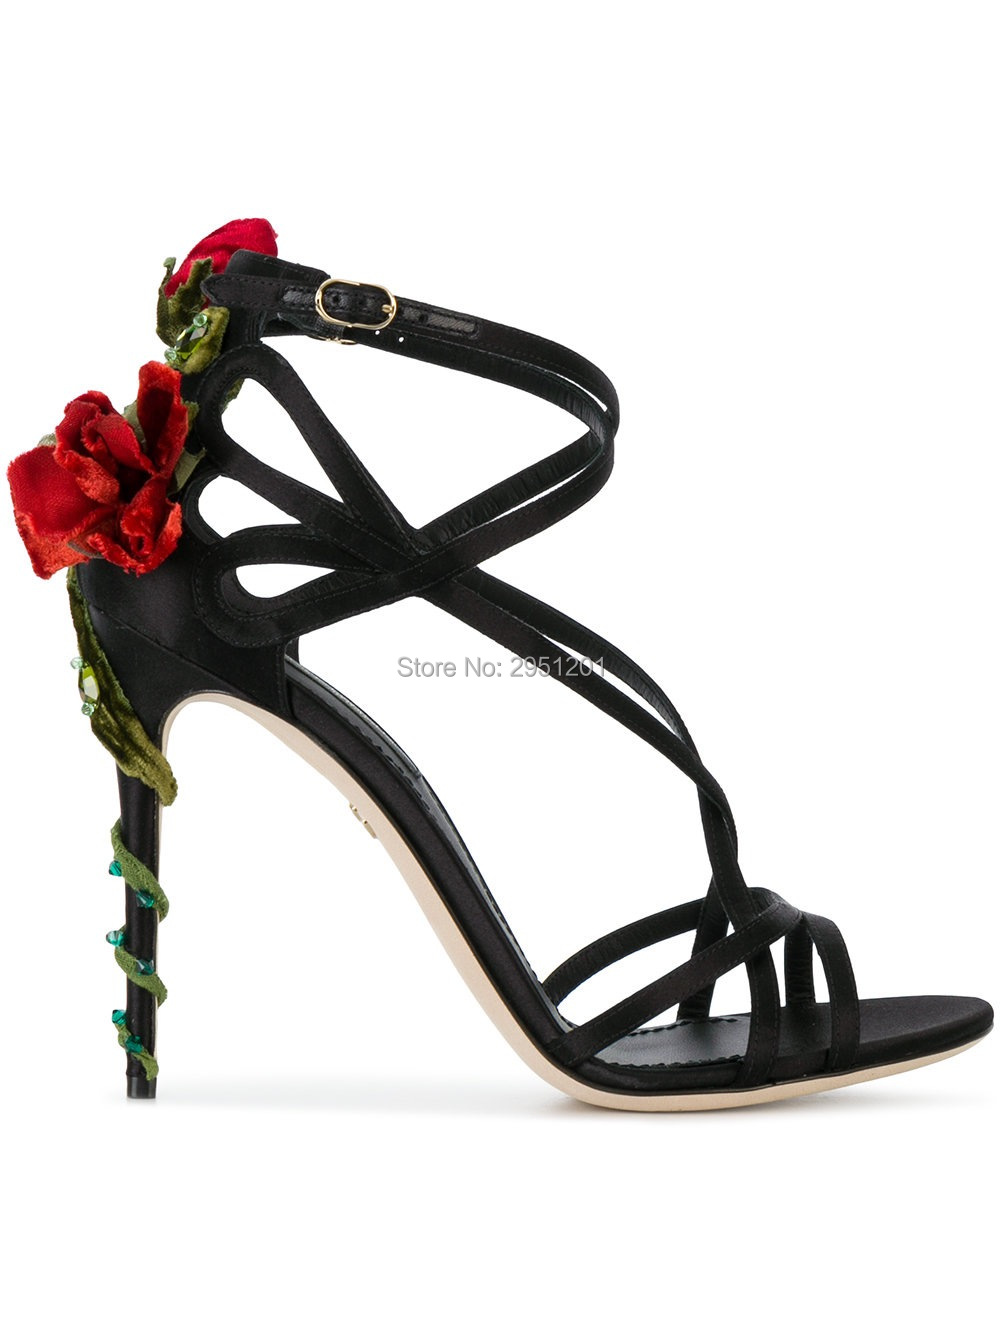 Women Open Toe Rose Flower High Heel Sandals Sweet Strappy Dress Shoes